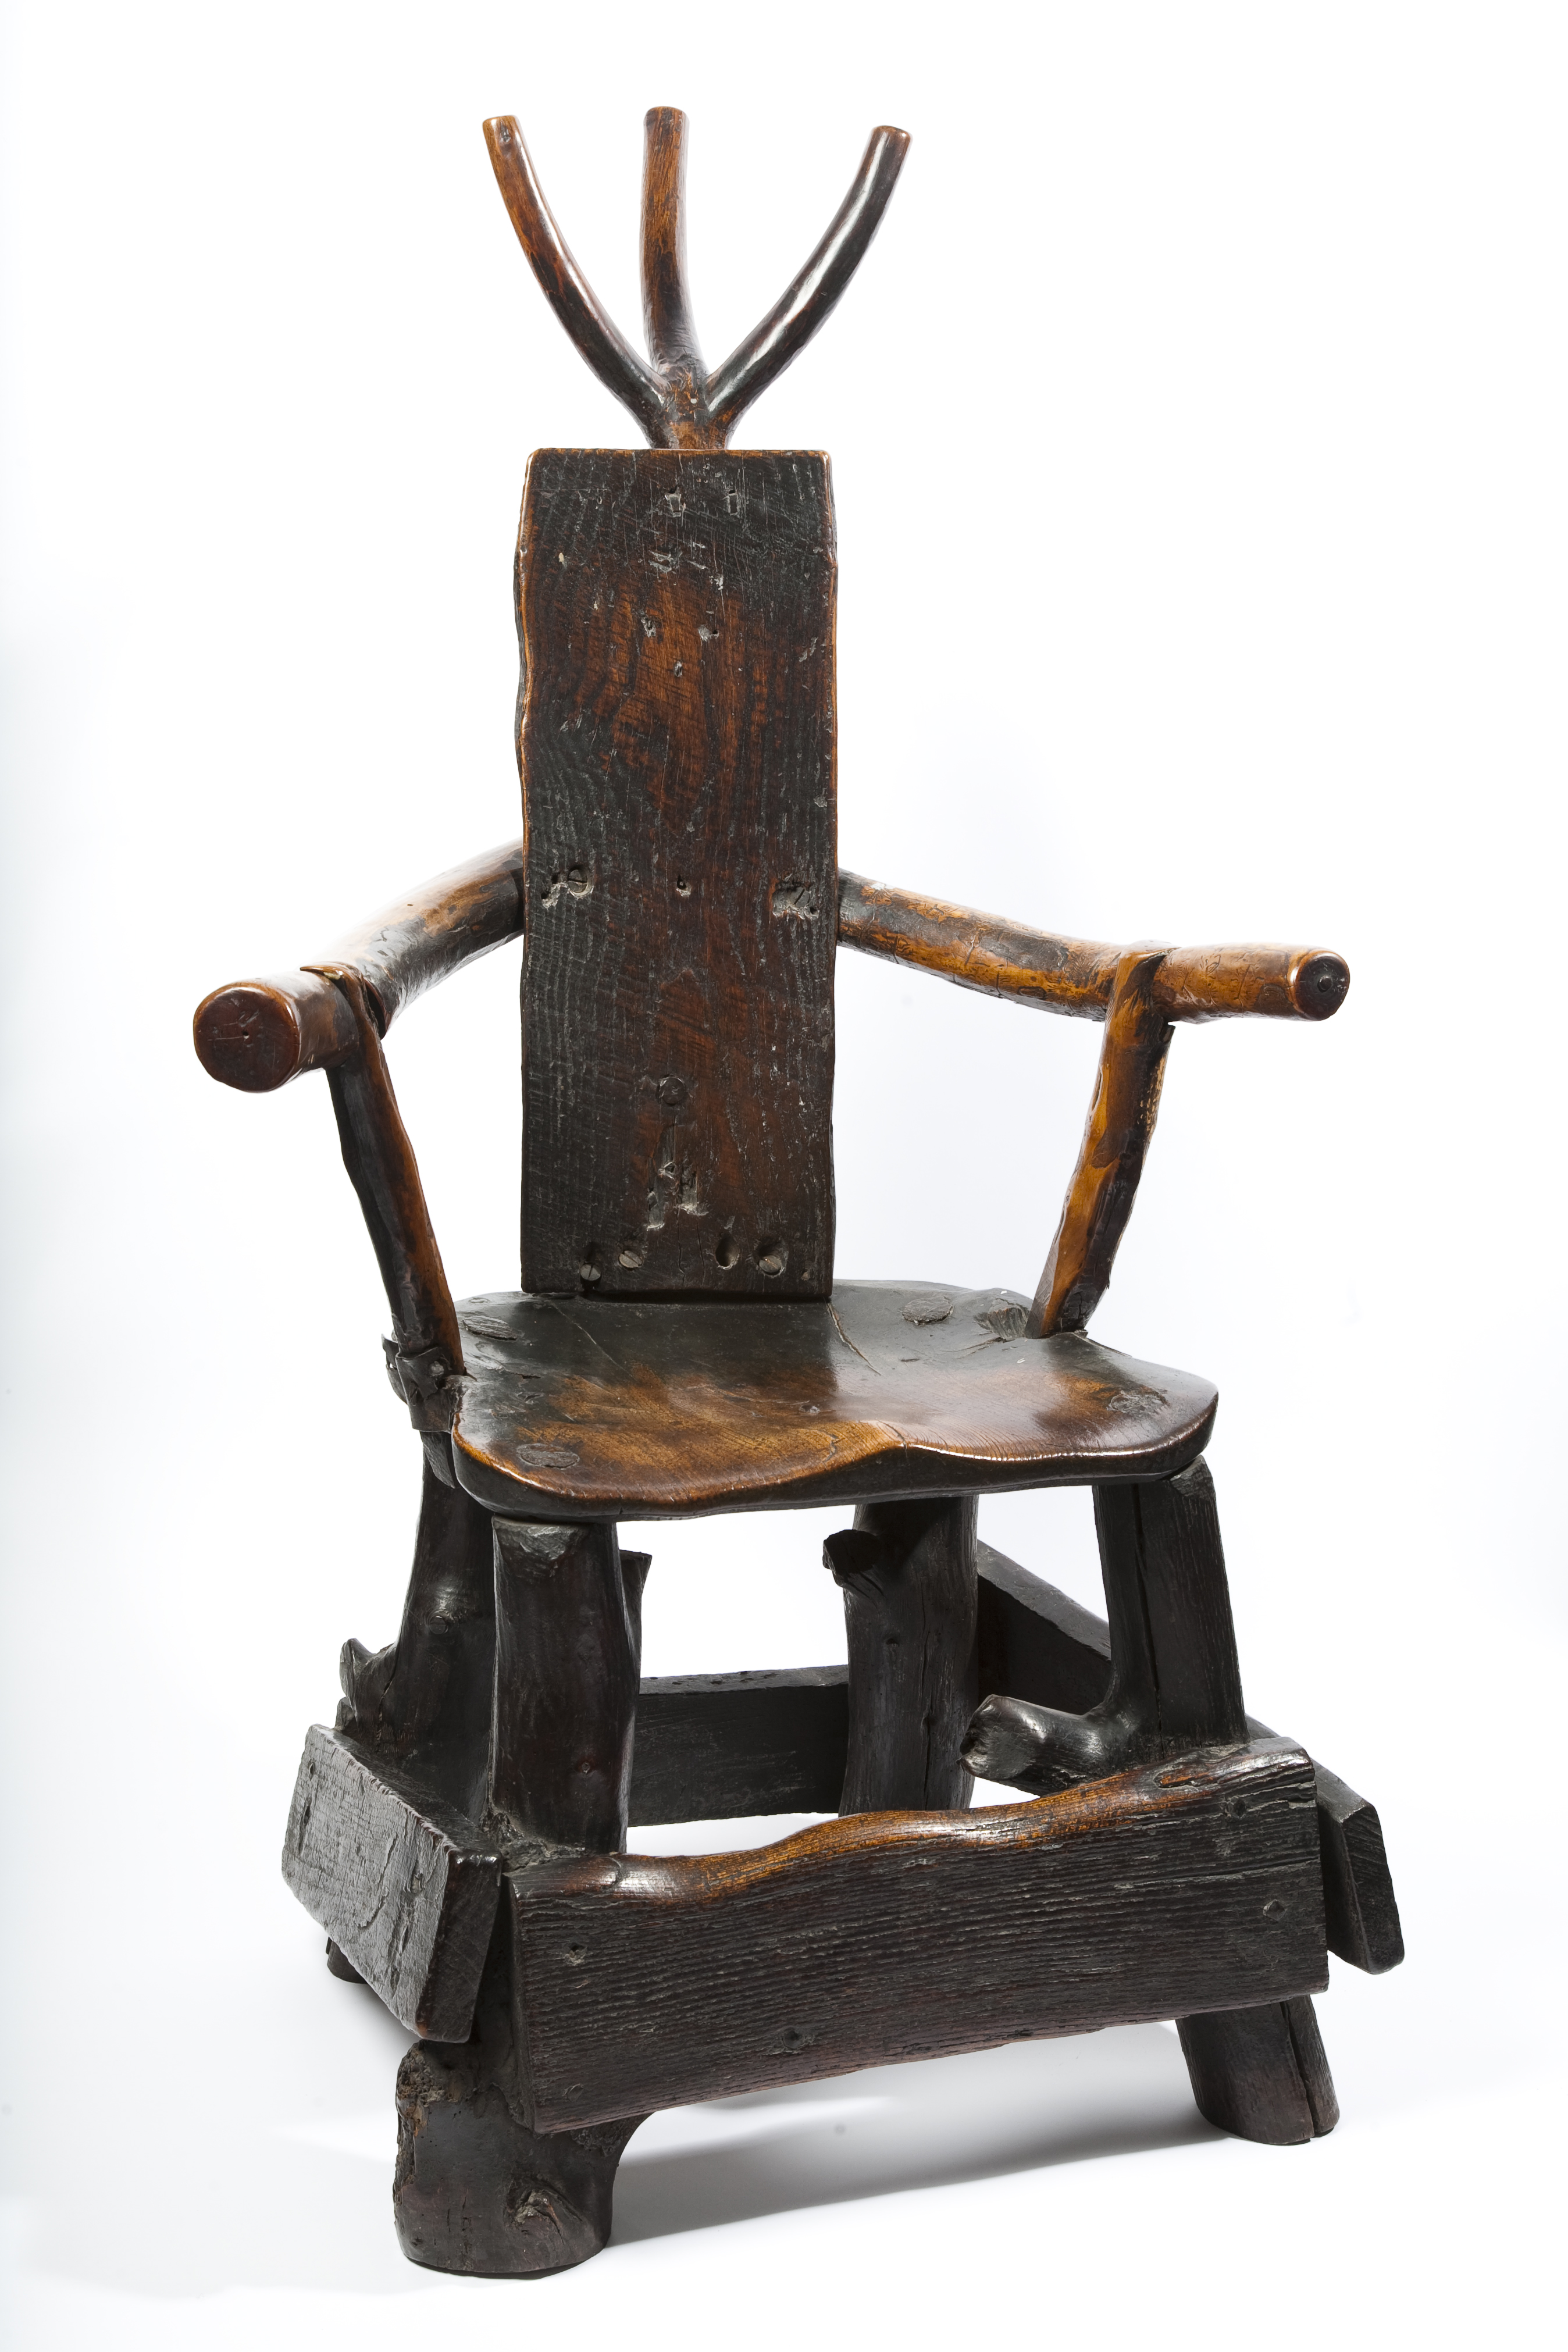 19th century barber-surgeon chair (British Dental Association Museum)